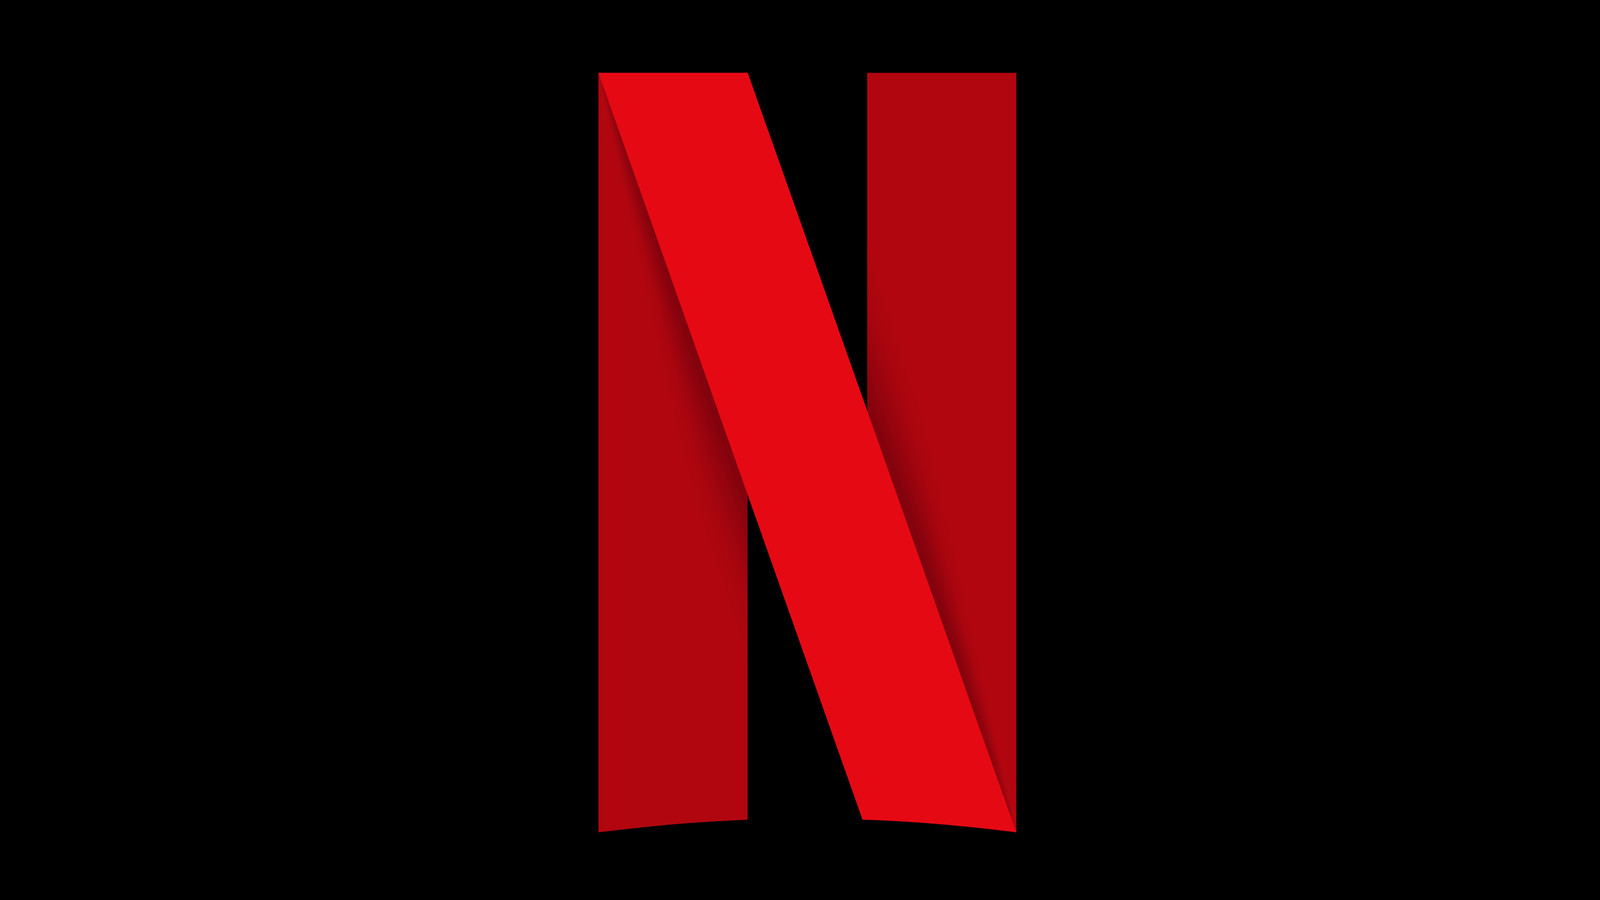 Netflix isn't changing its logo, but has a new icon - The Verge